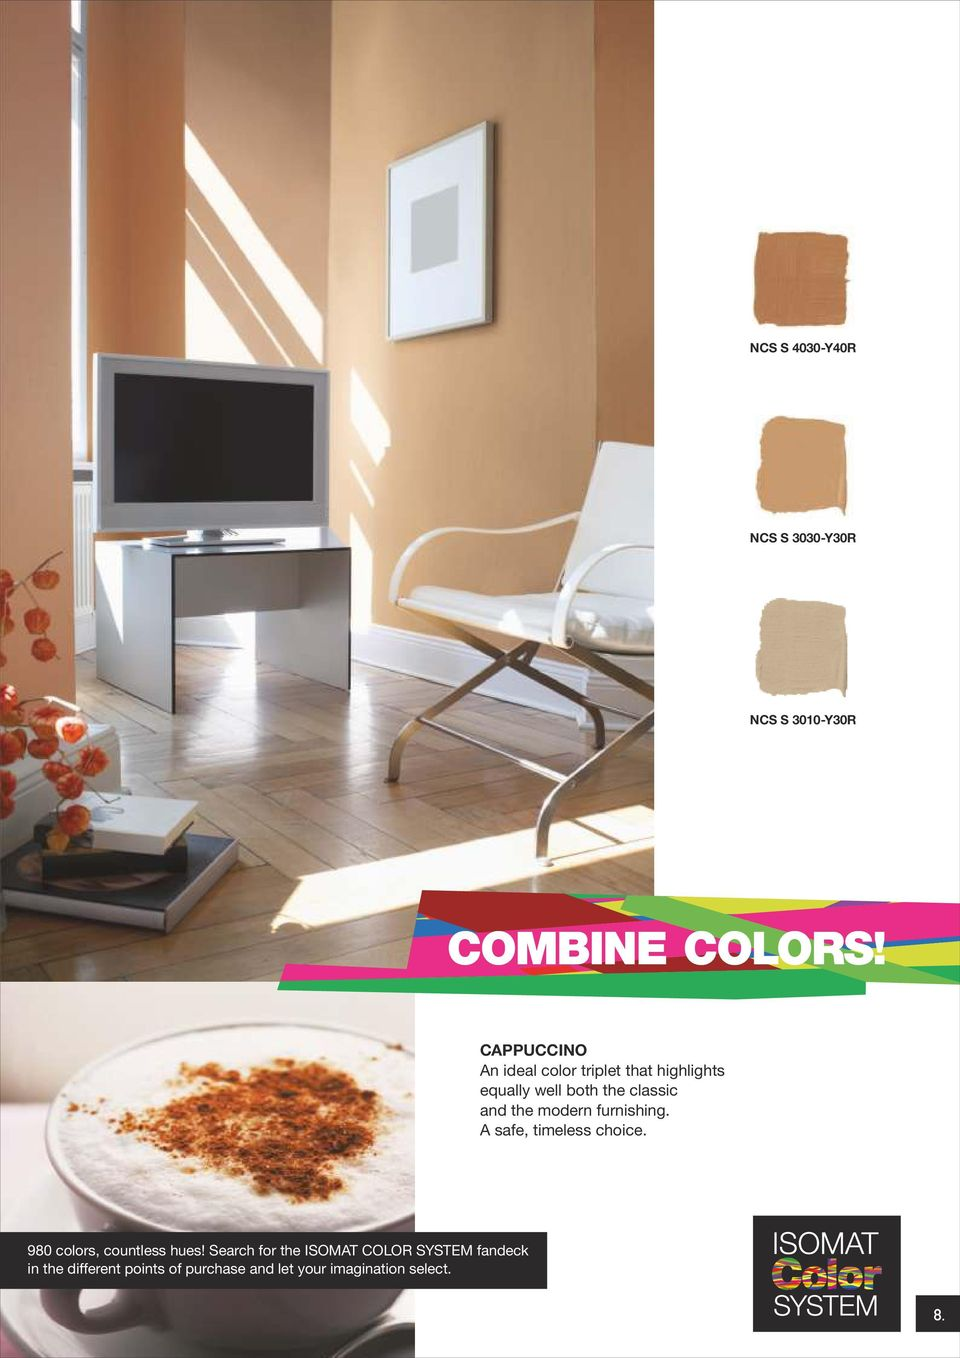 the modern furnishing. A safe, timeless choice. 980 colors, countless hues!